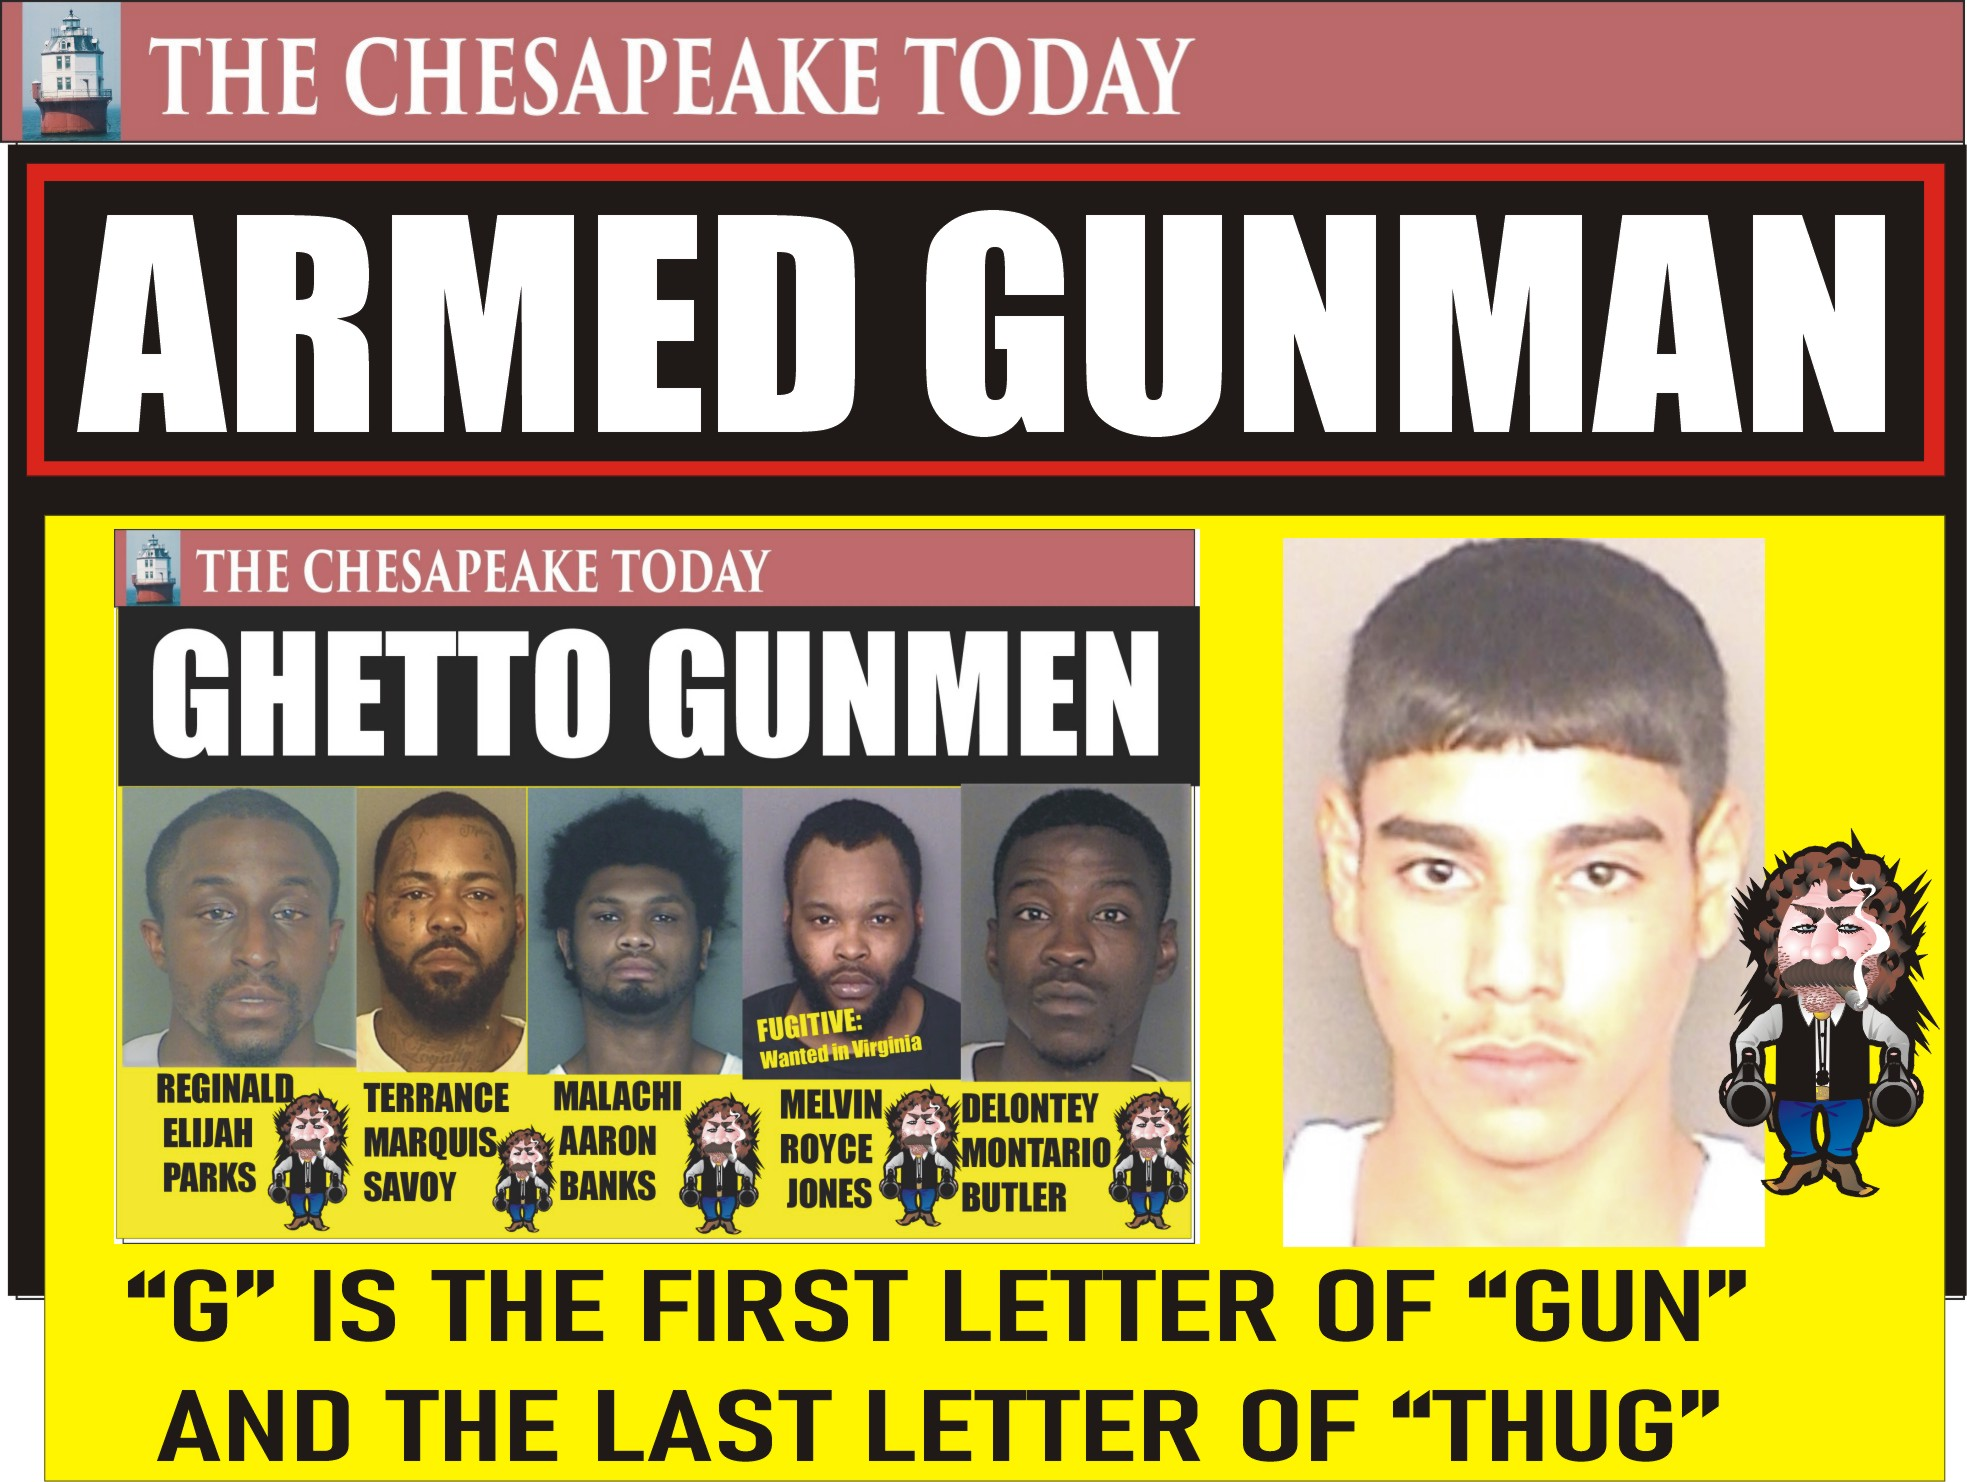 GHETTO GUNMEN: CRIME AND DECLINE: Nathan Allen Nabbed with Loaded Gun in Crime Town